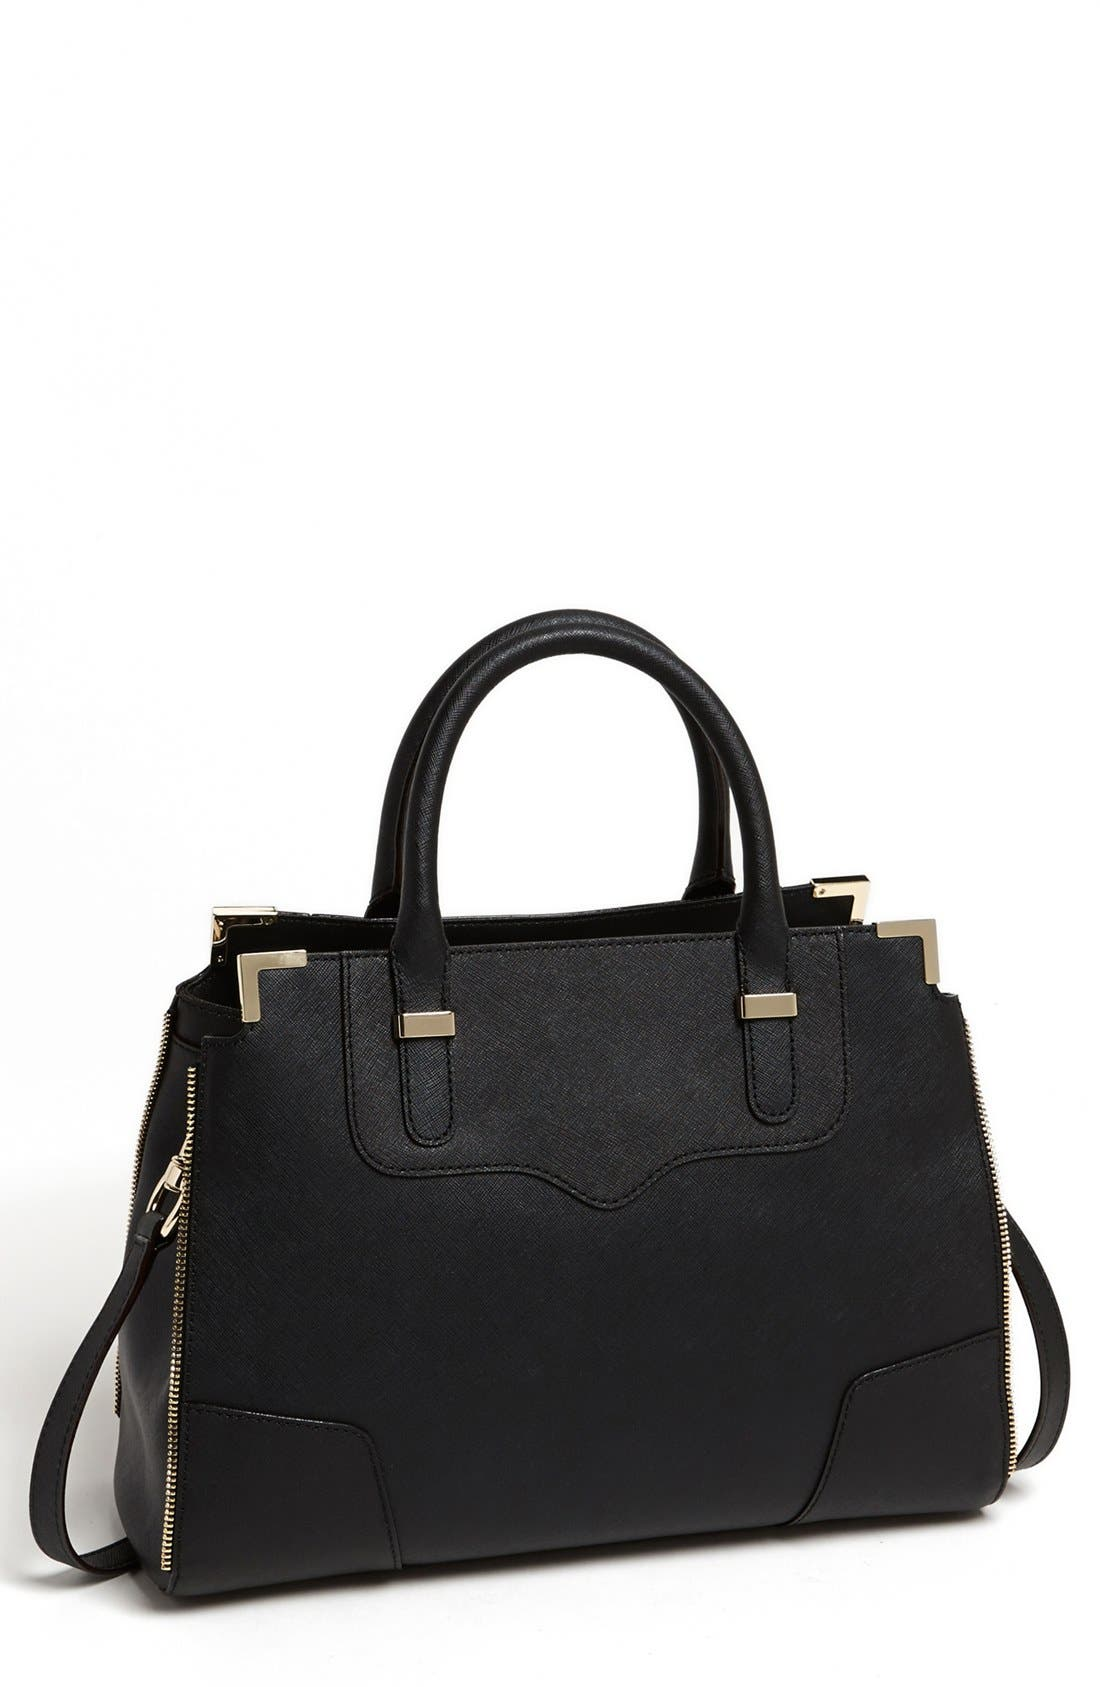 Alternate Image 1 Selected - Rebecca Minkoff 'Amorous' Satchel